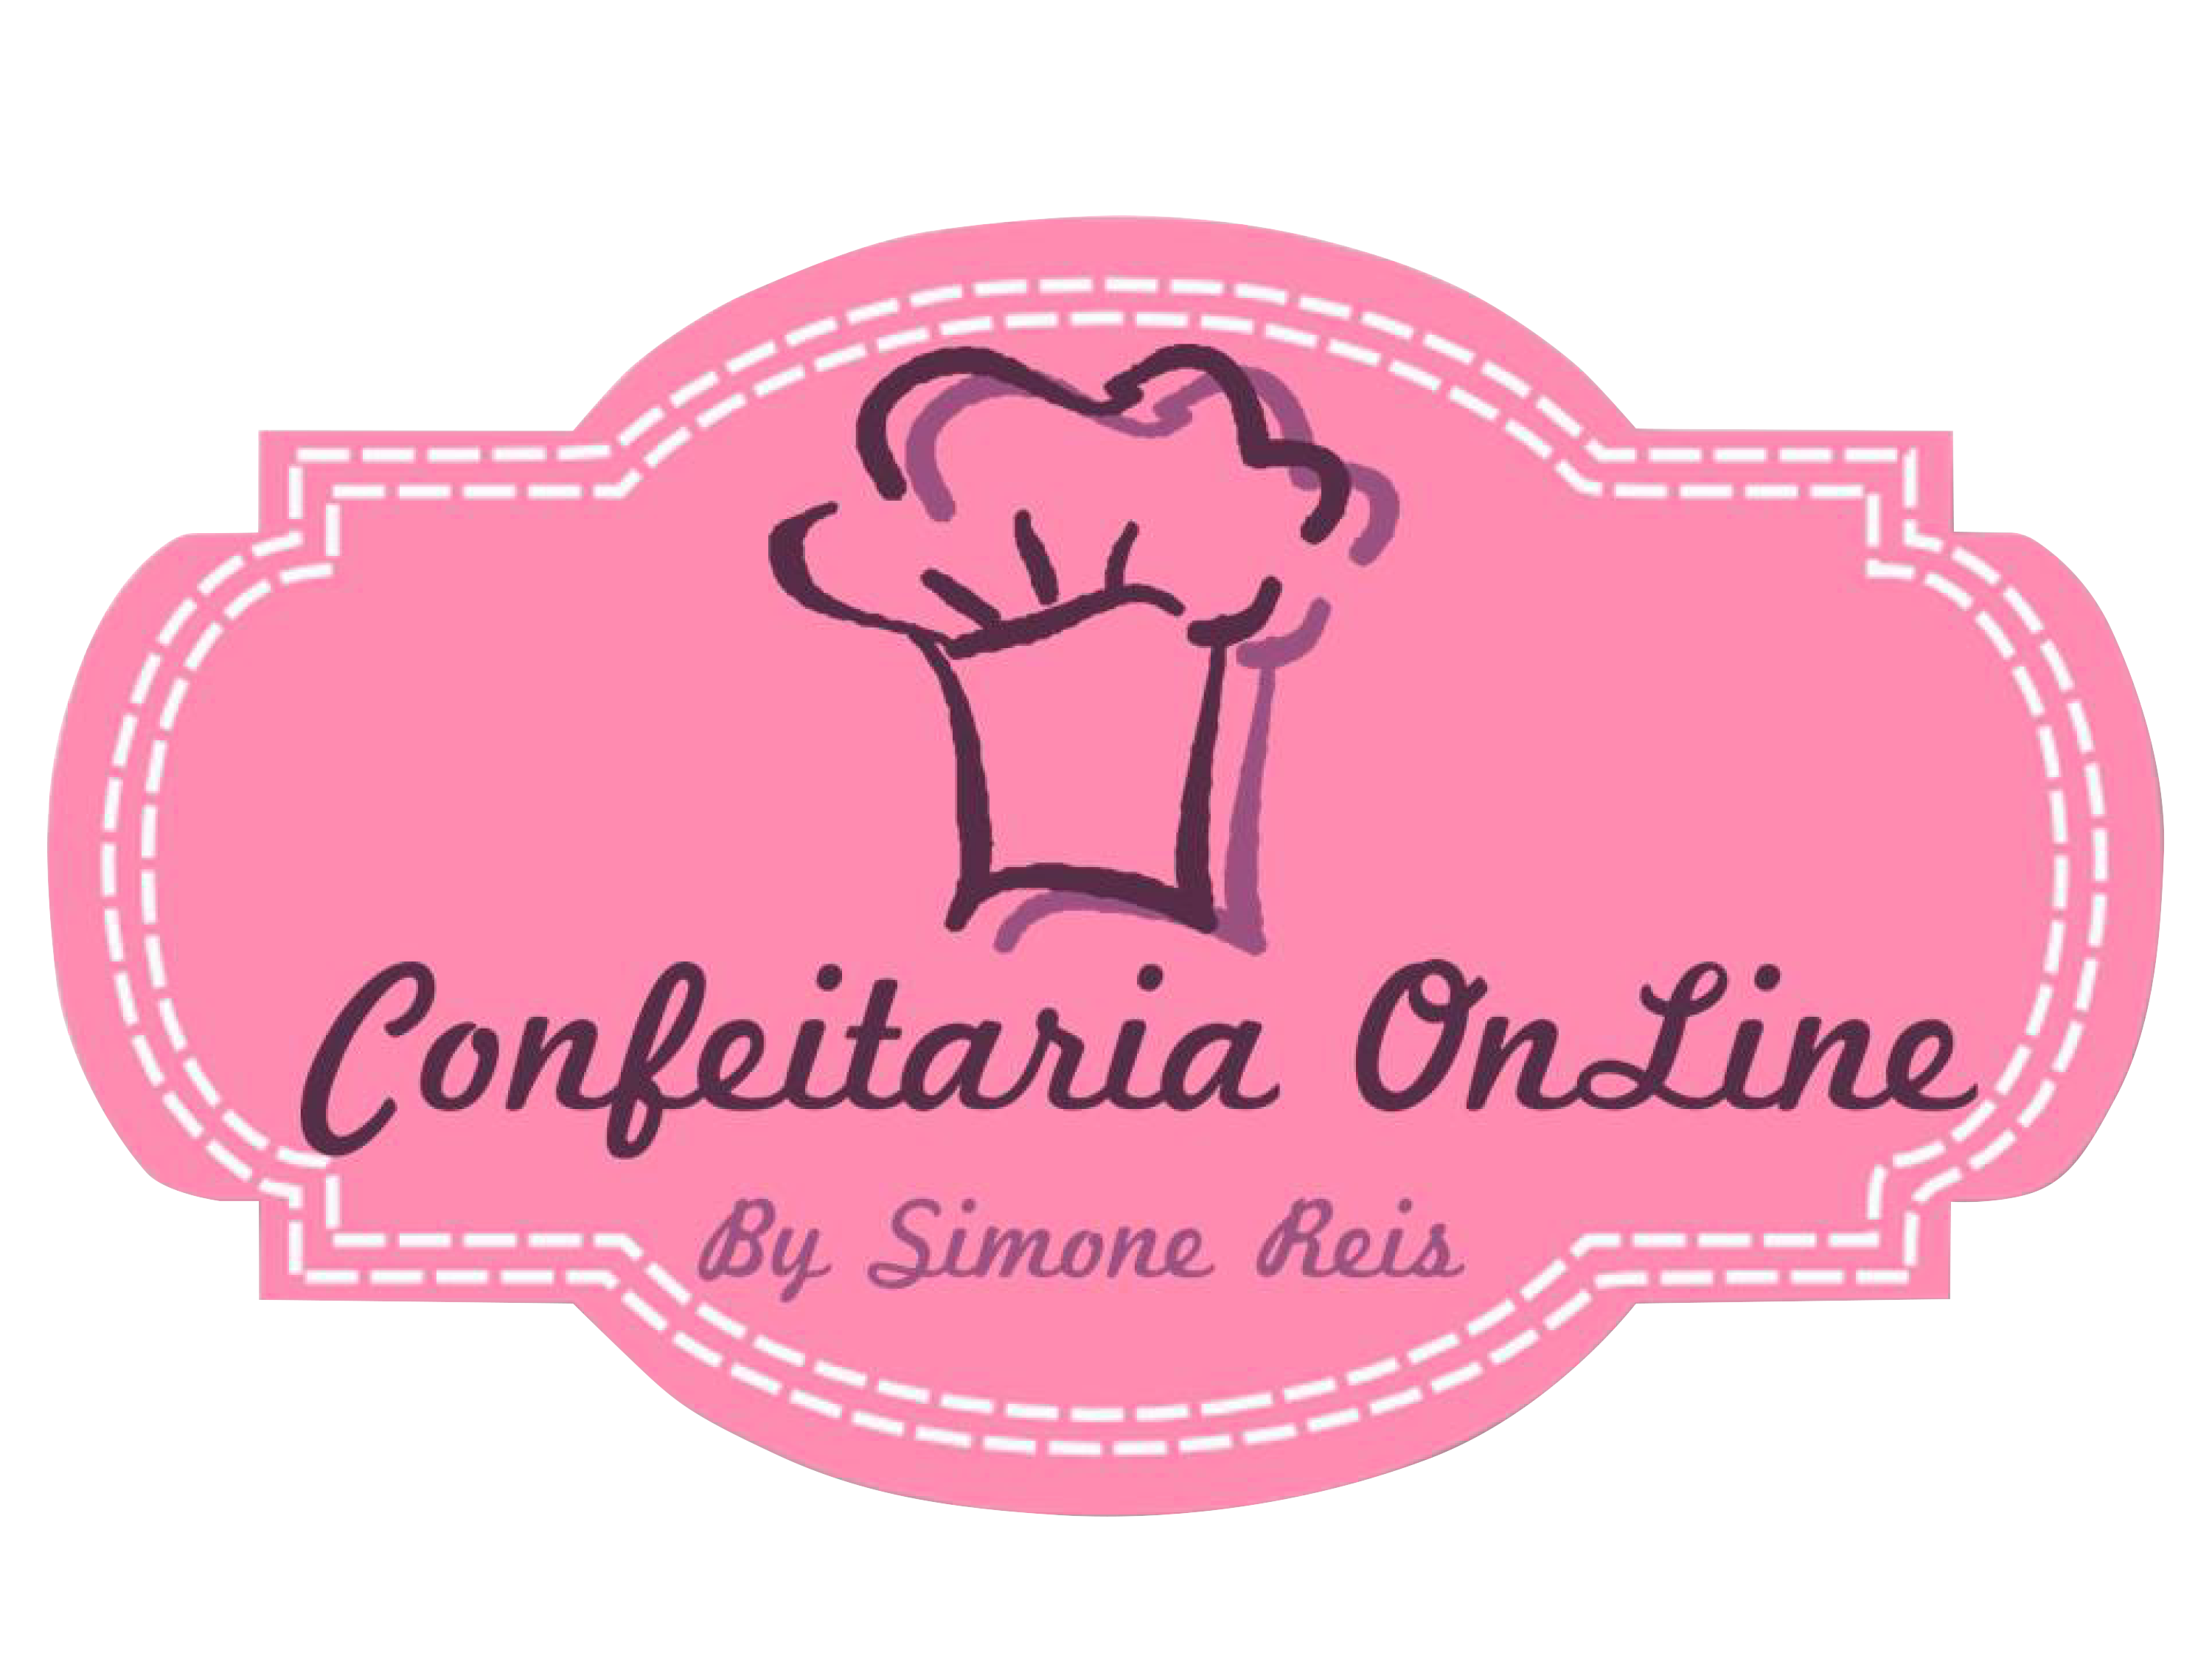 Curso sobre Marketing na Internet e nas Redes Sociais para Cake Designers.